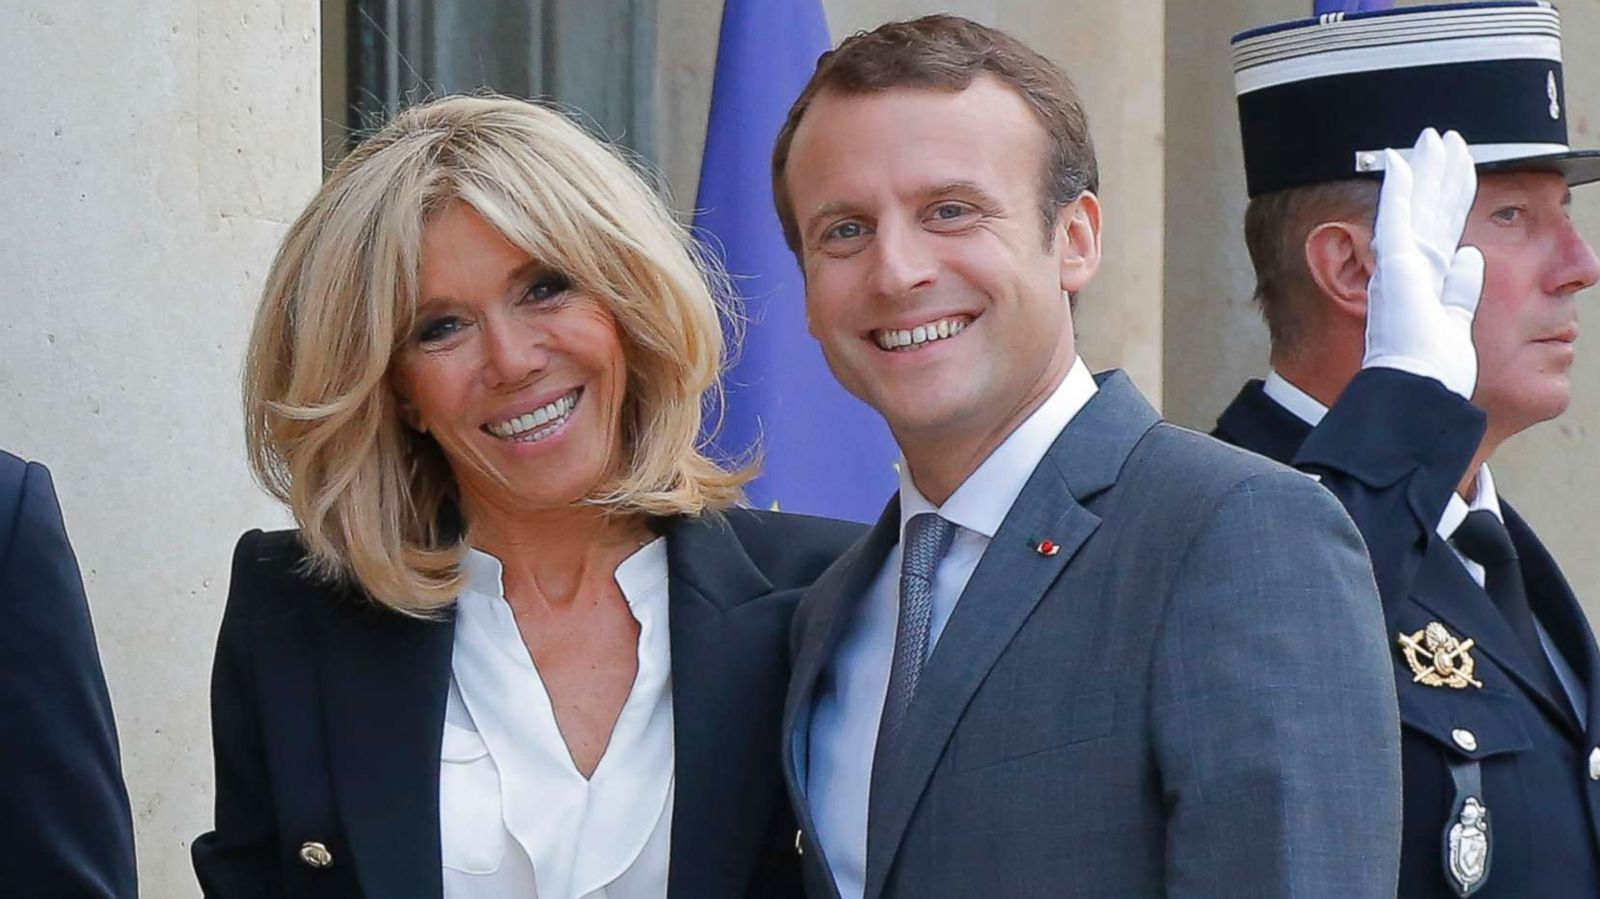 Emmanuel Macron S Wife On 25 Year Age Gap We Have Breakfast Together Me And My Wrinkles Abc News